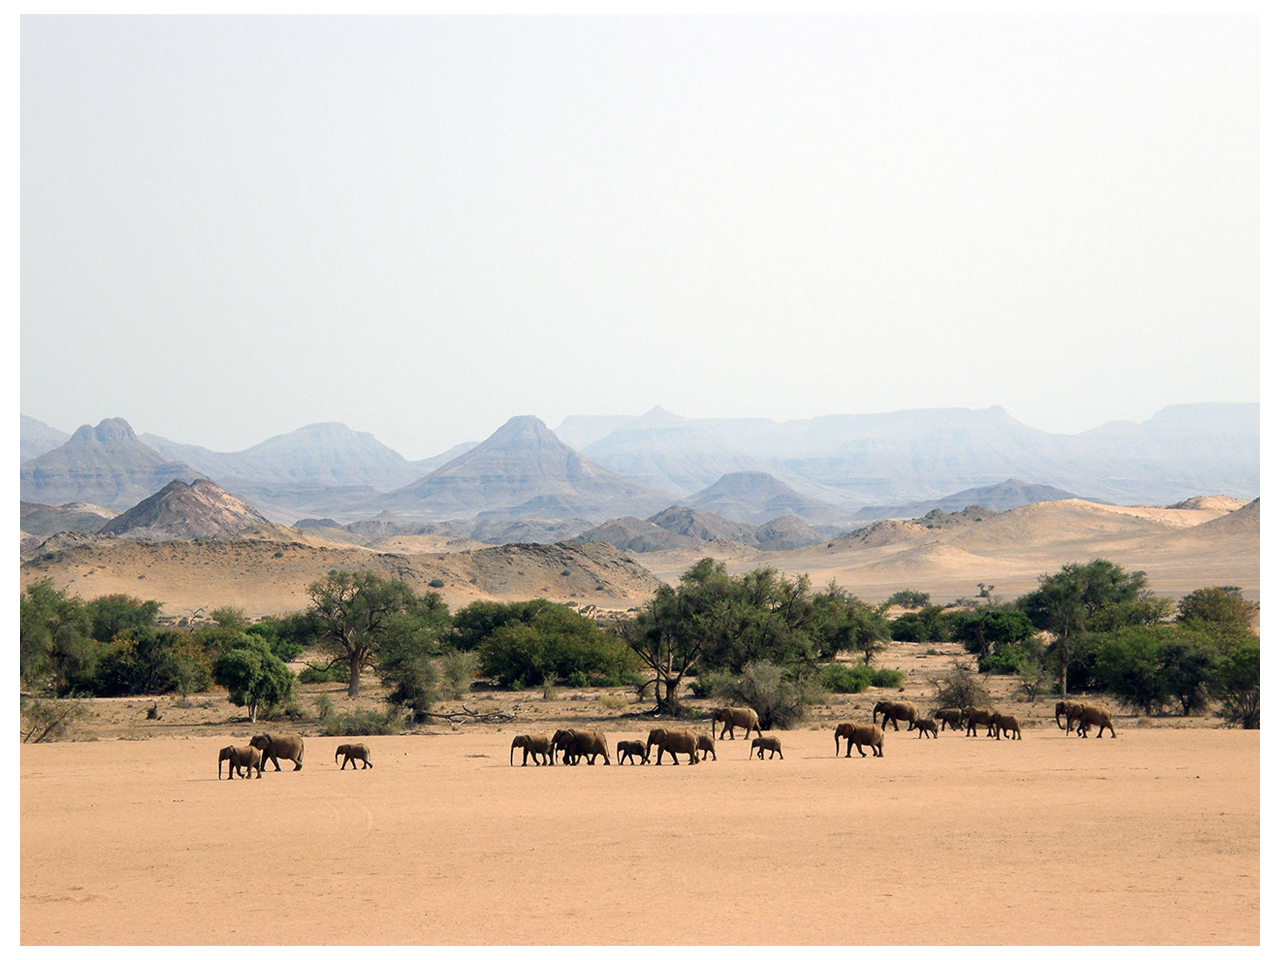 Desert adapted elephants